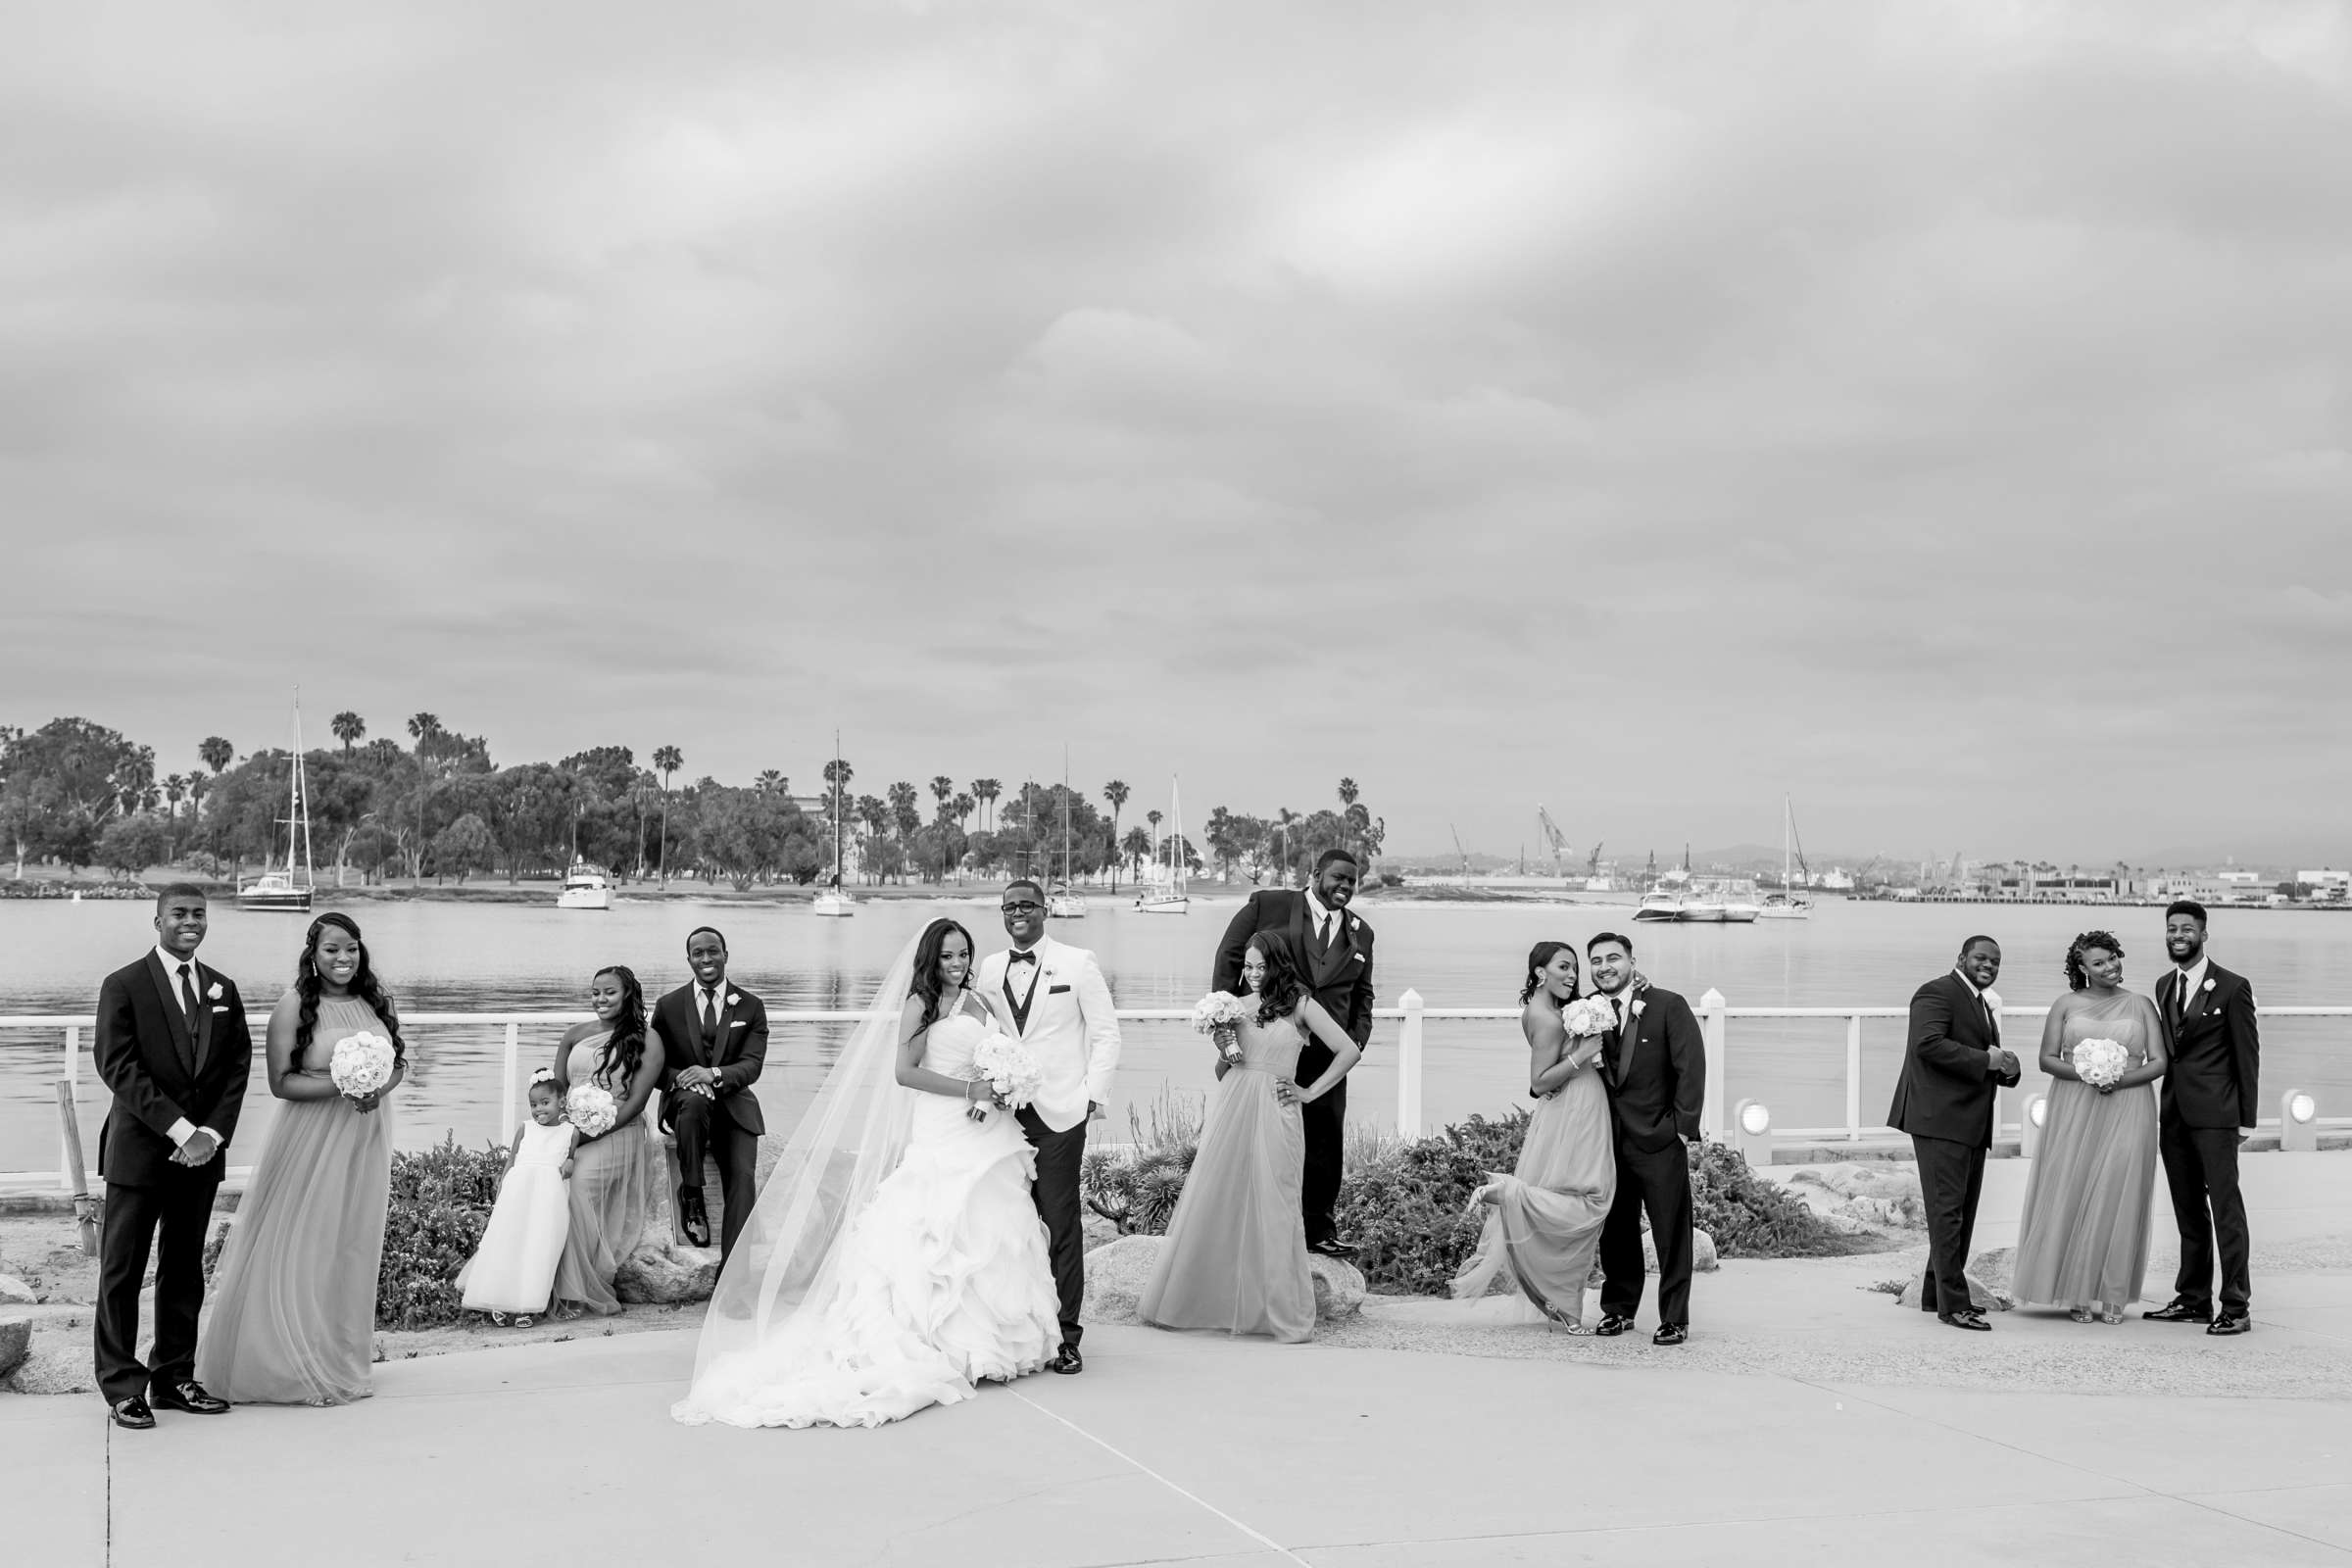 Coronado Community Center Wedding coordinated by First Comes Love Weddings & Events, Nikia and Charles Wedding Photo #66 by True Photography